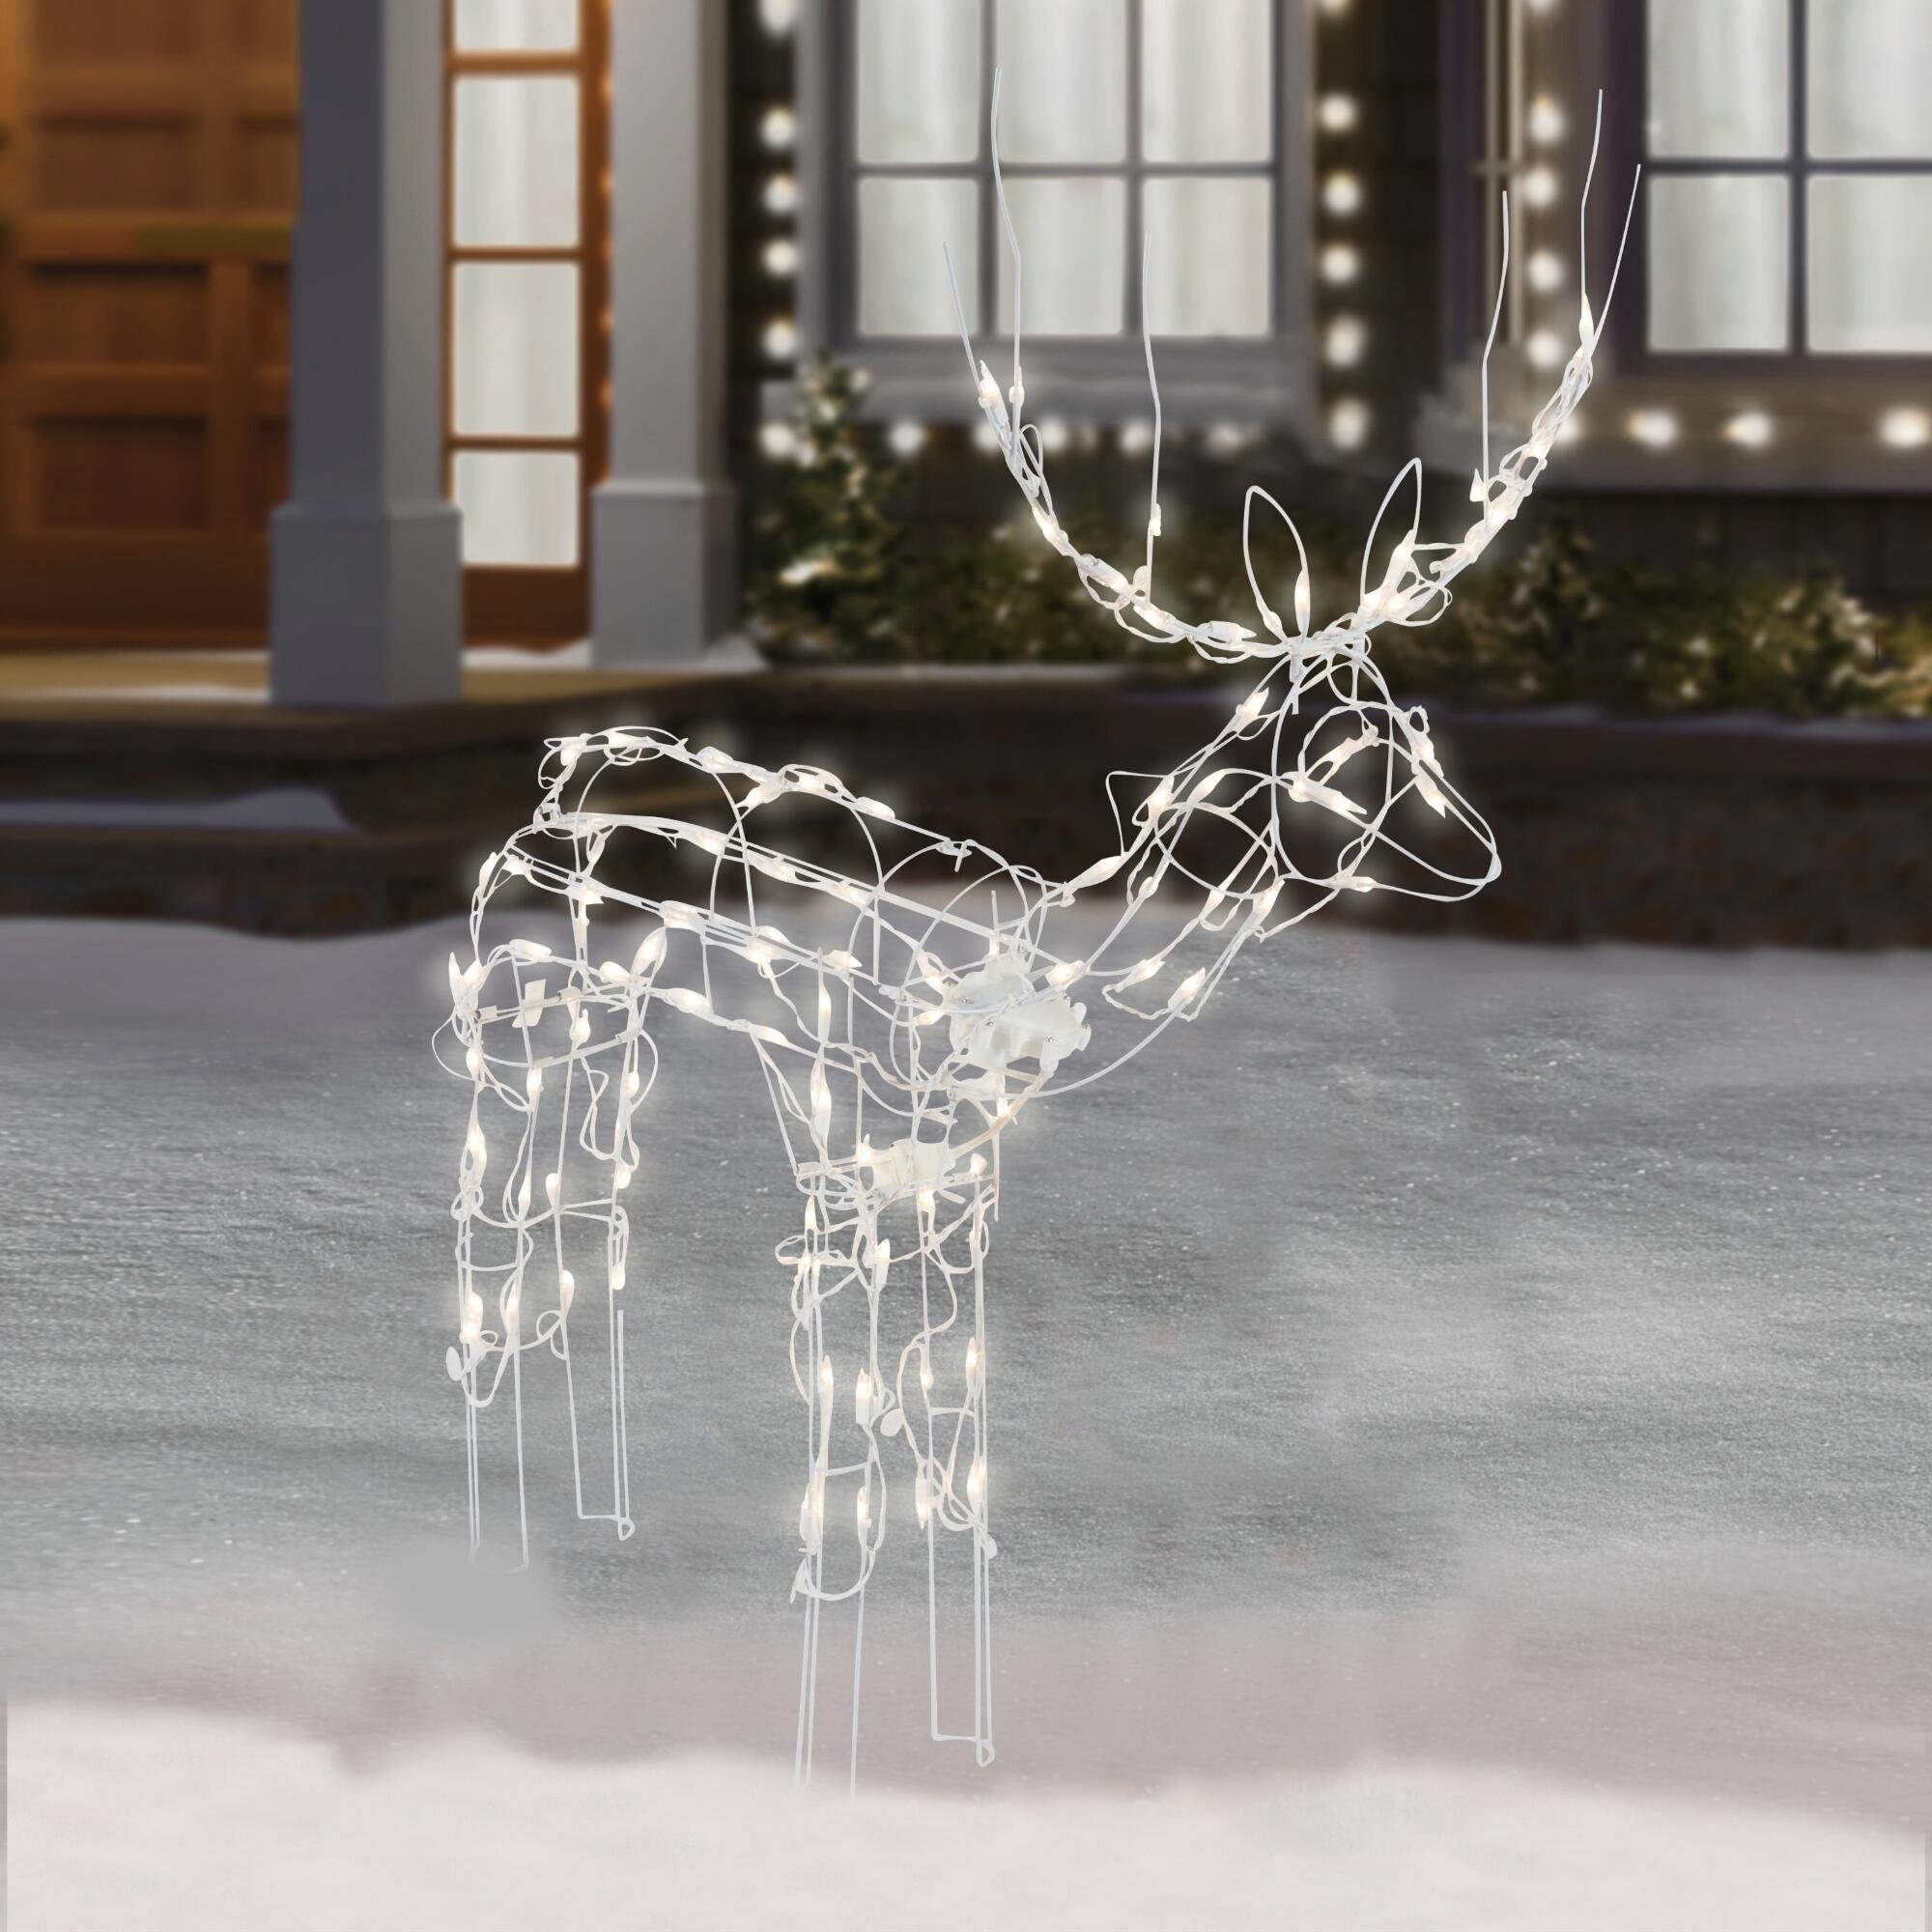 2-Piece Lighted Animated Holiday Deer Family - 48'' Animated Buck and 42'' Animated Doe - 210 Clear Lights by Winter Wonder Lane (Image #2)